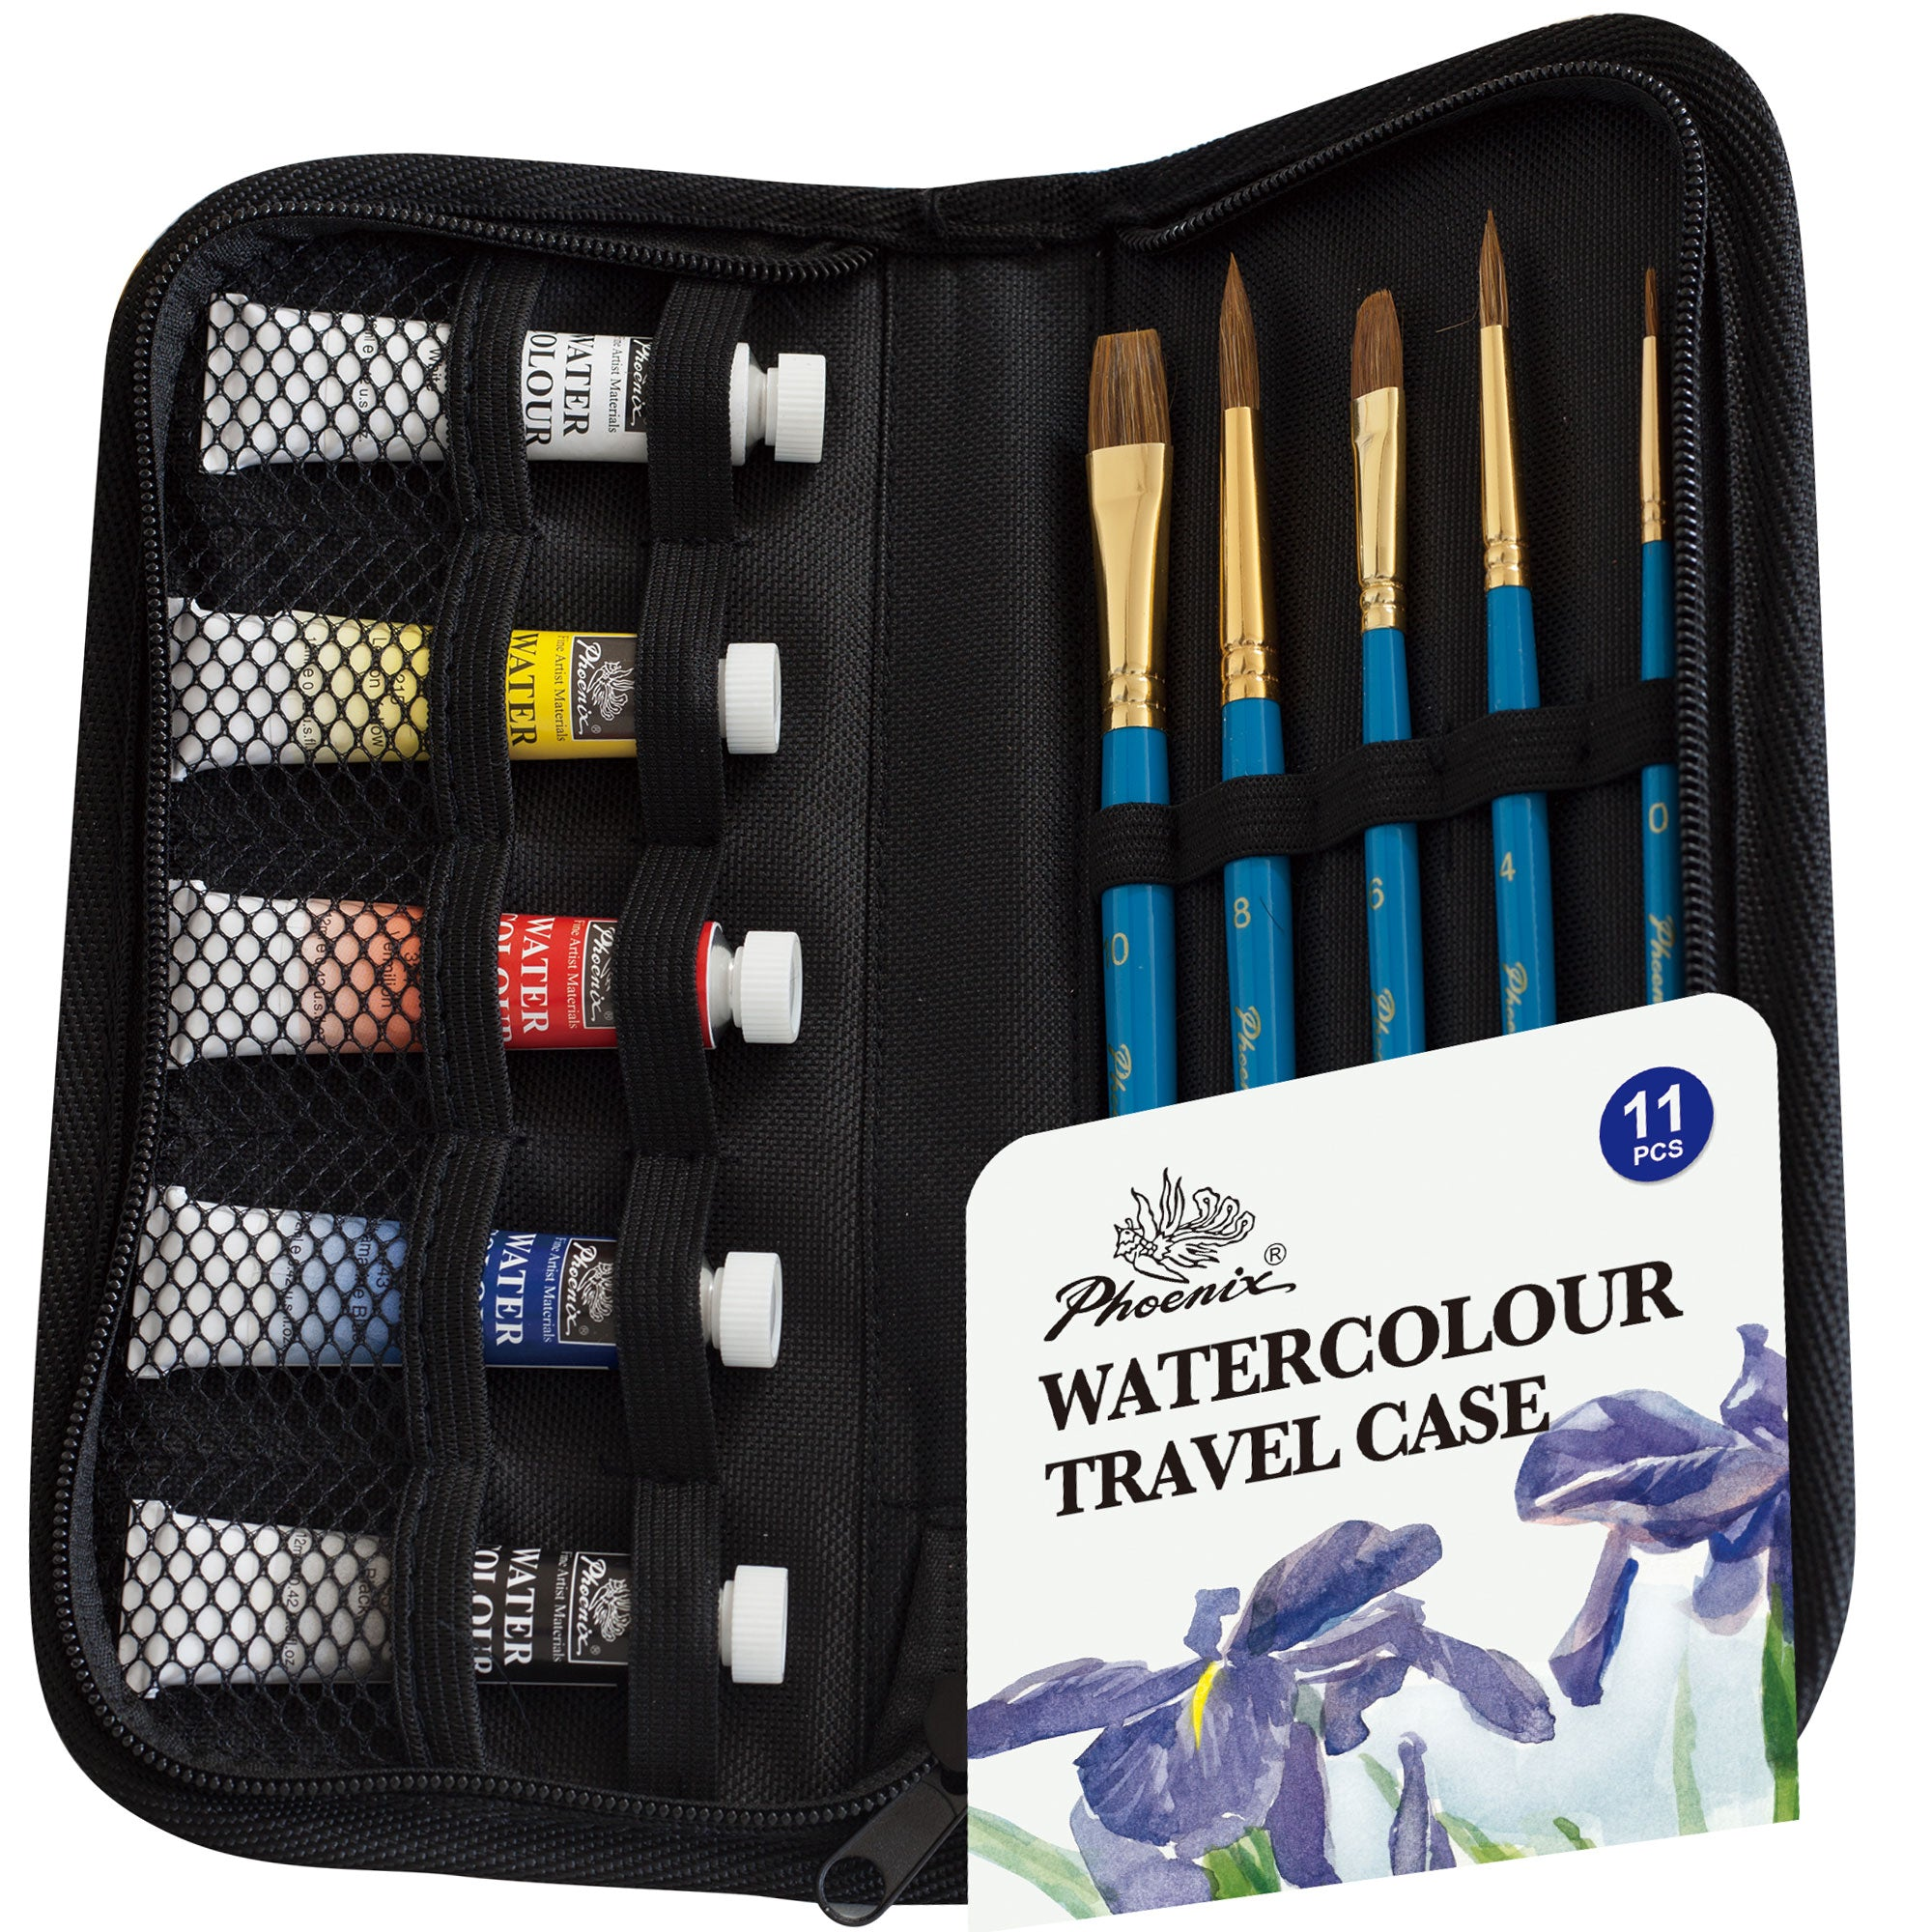 Watercolour Painting Travel Case 11pcs